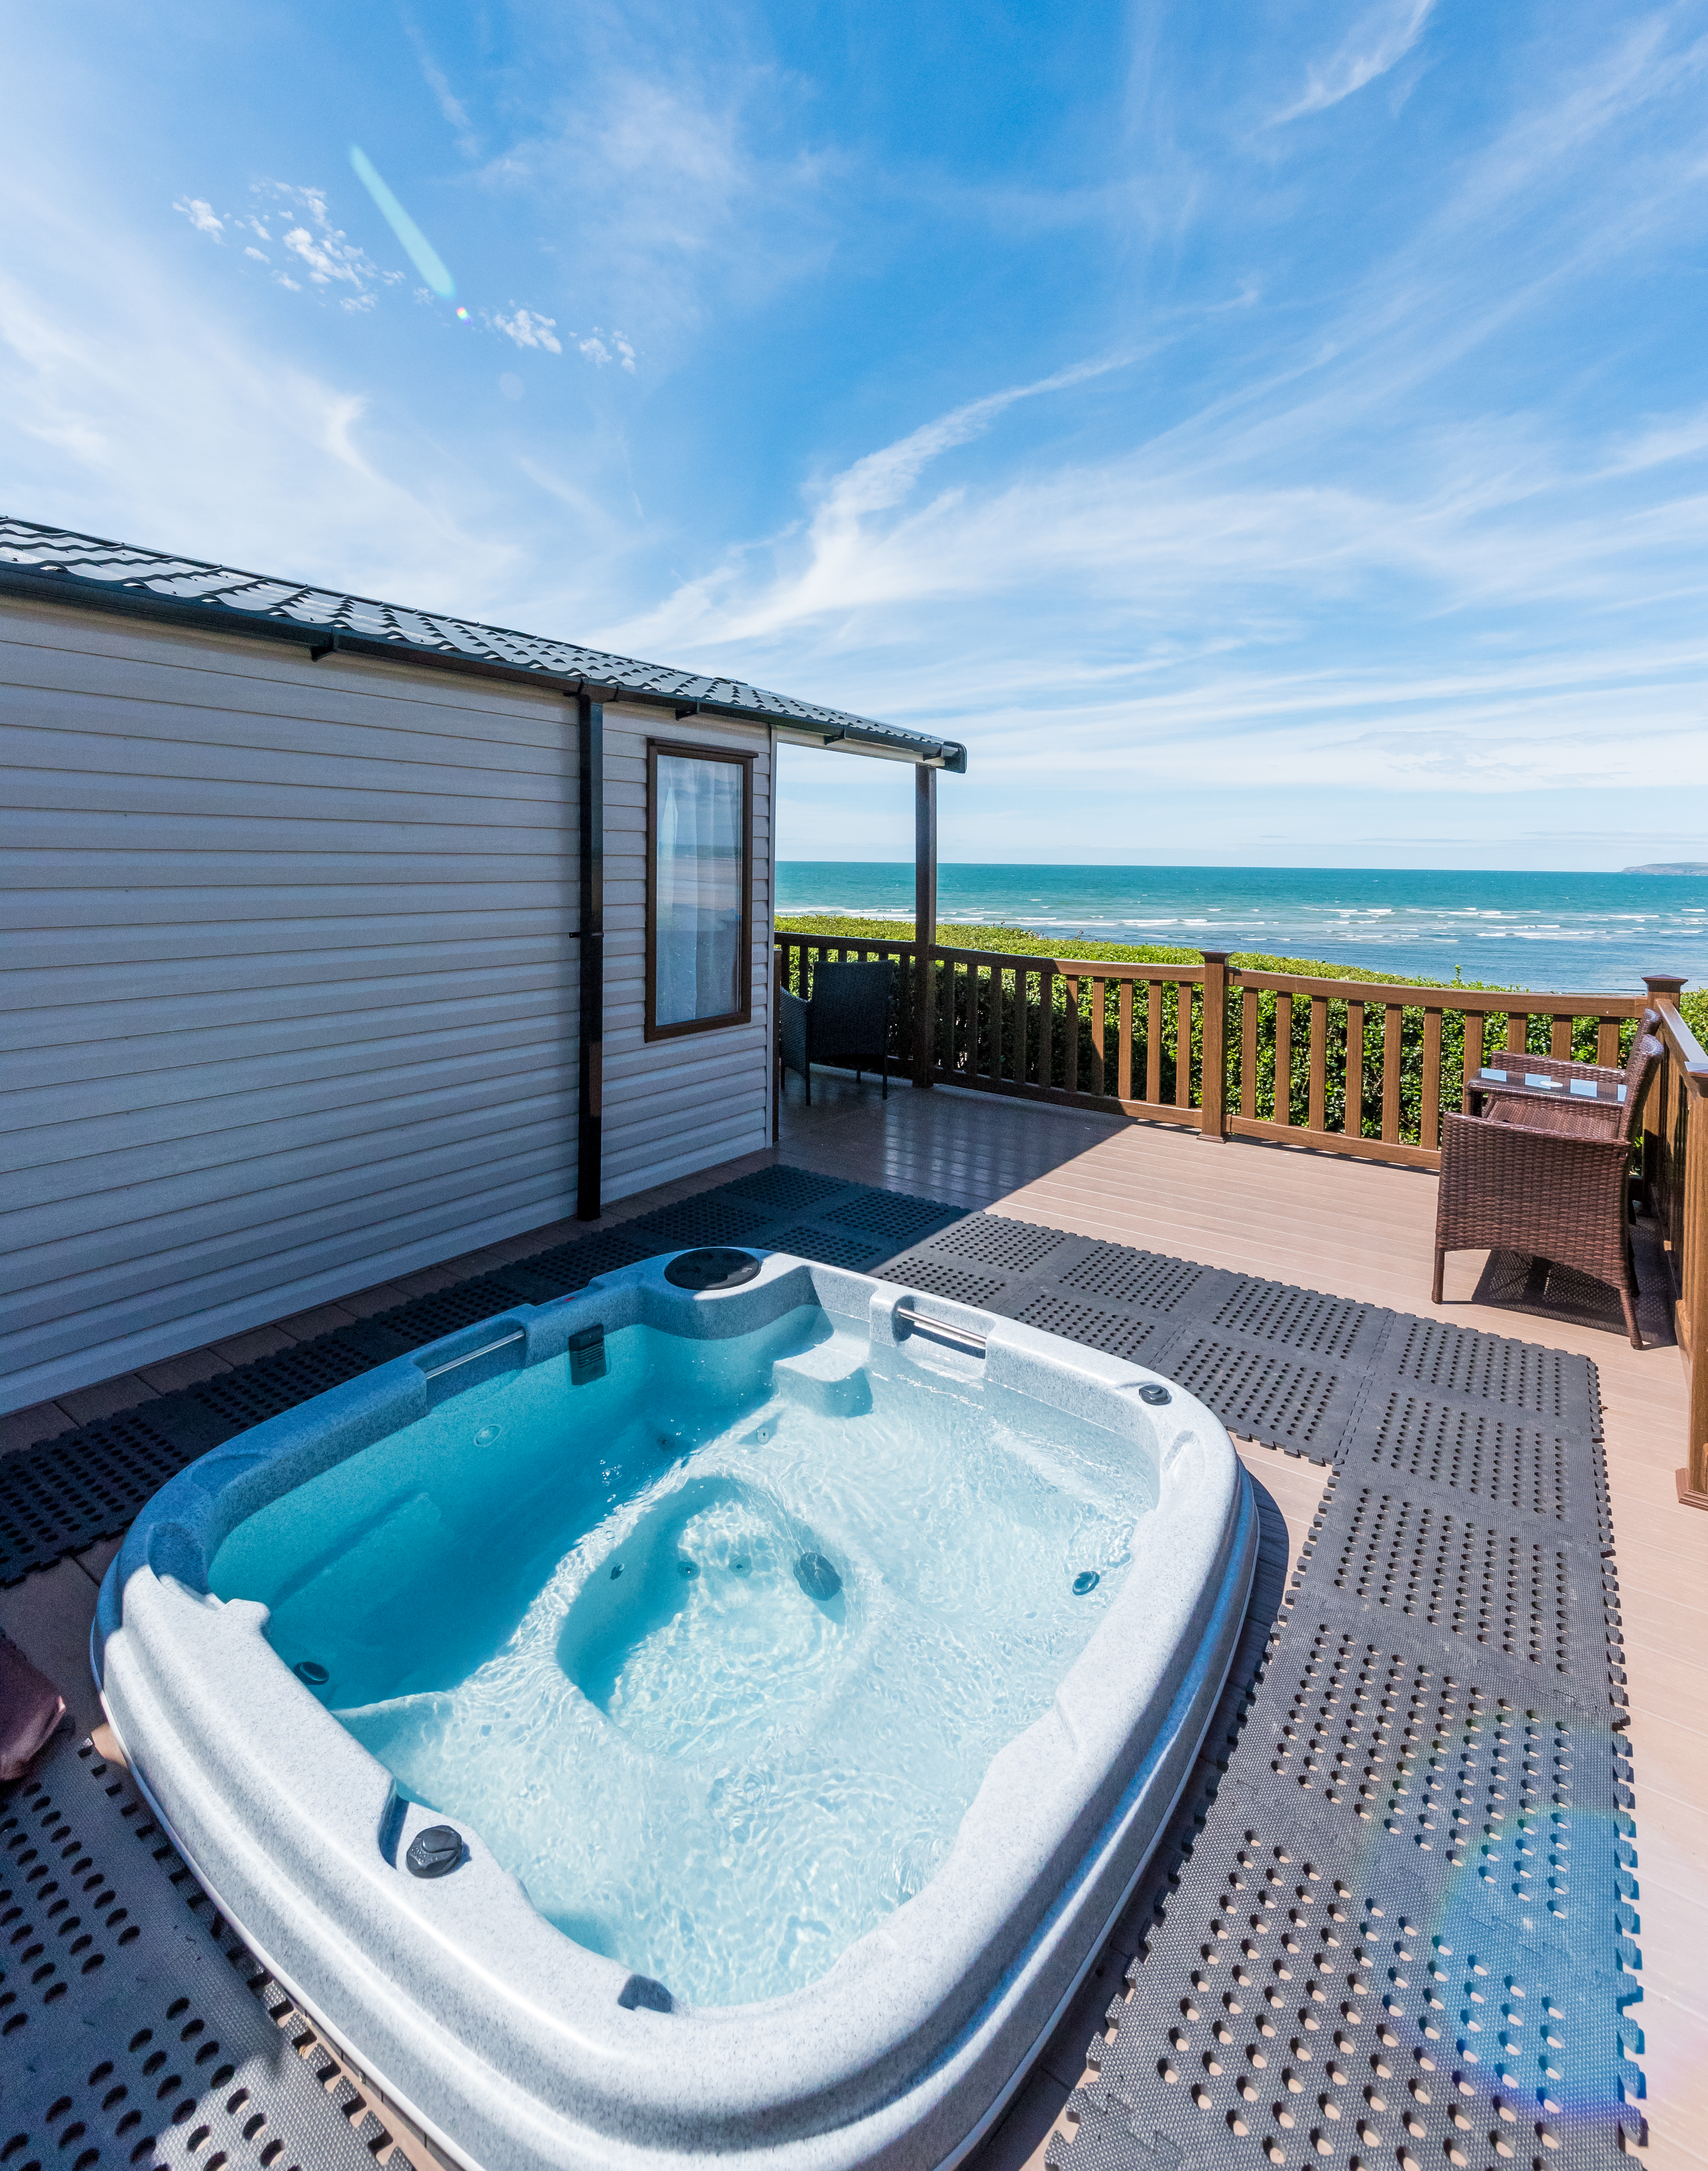 Holiday accommodation with hot tubs